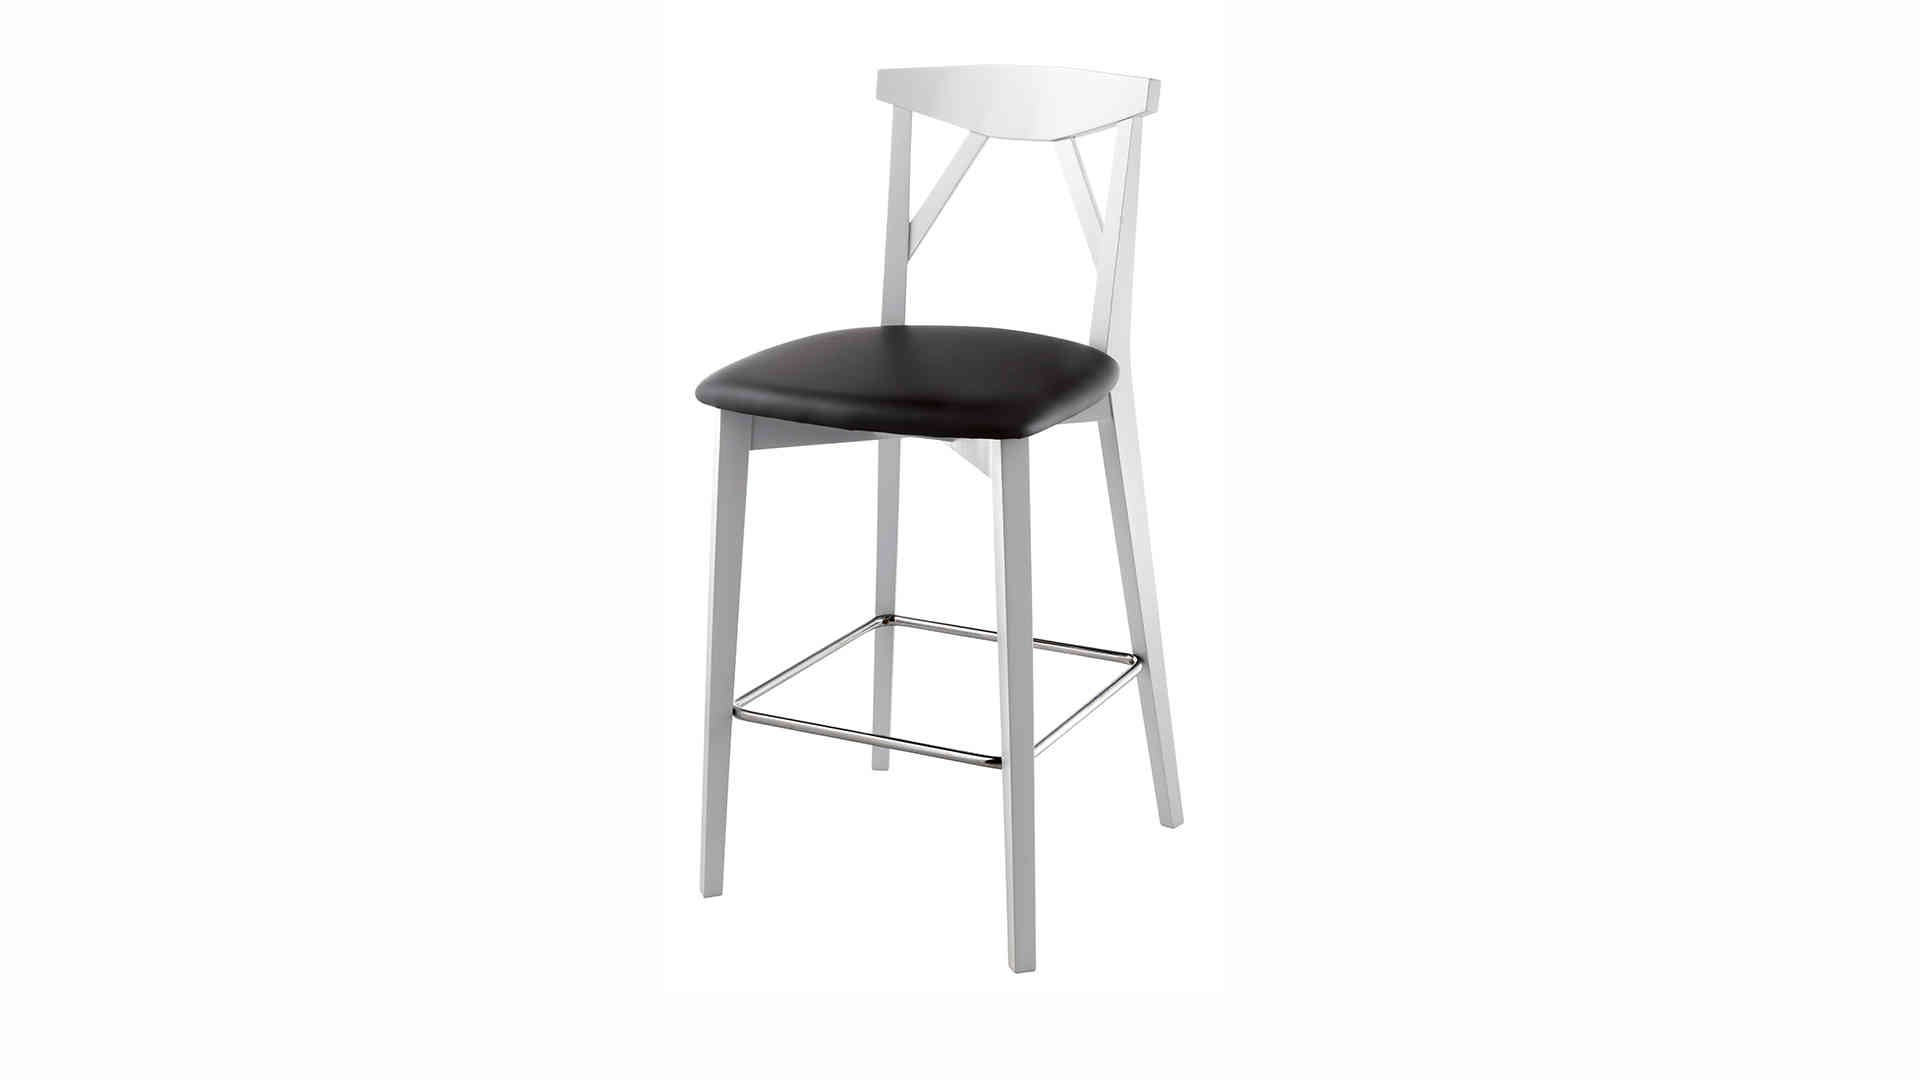 Chaise de bar cuisinelle cuisine id es de d coration - Chaise de bar cuisine ...